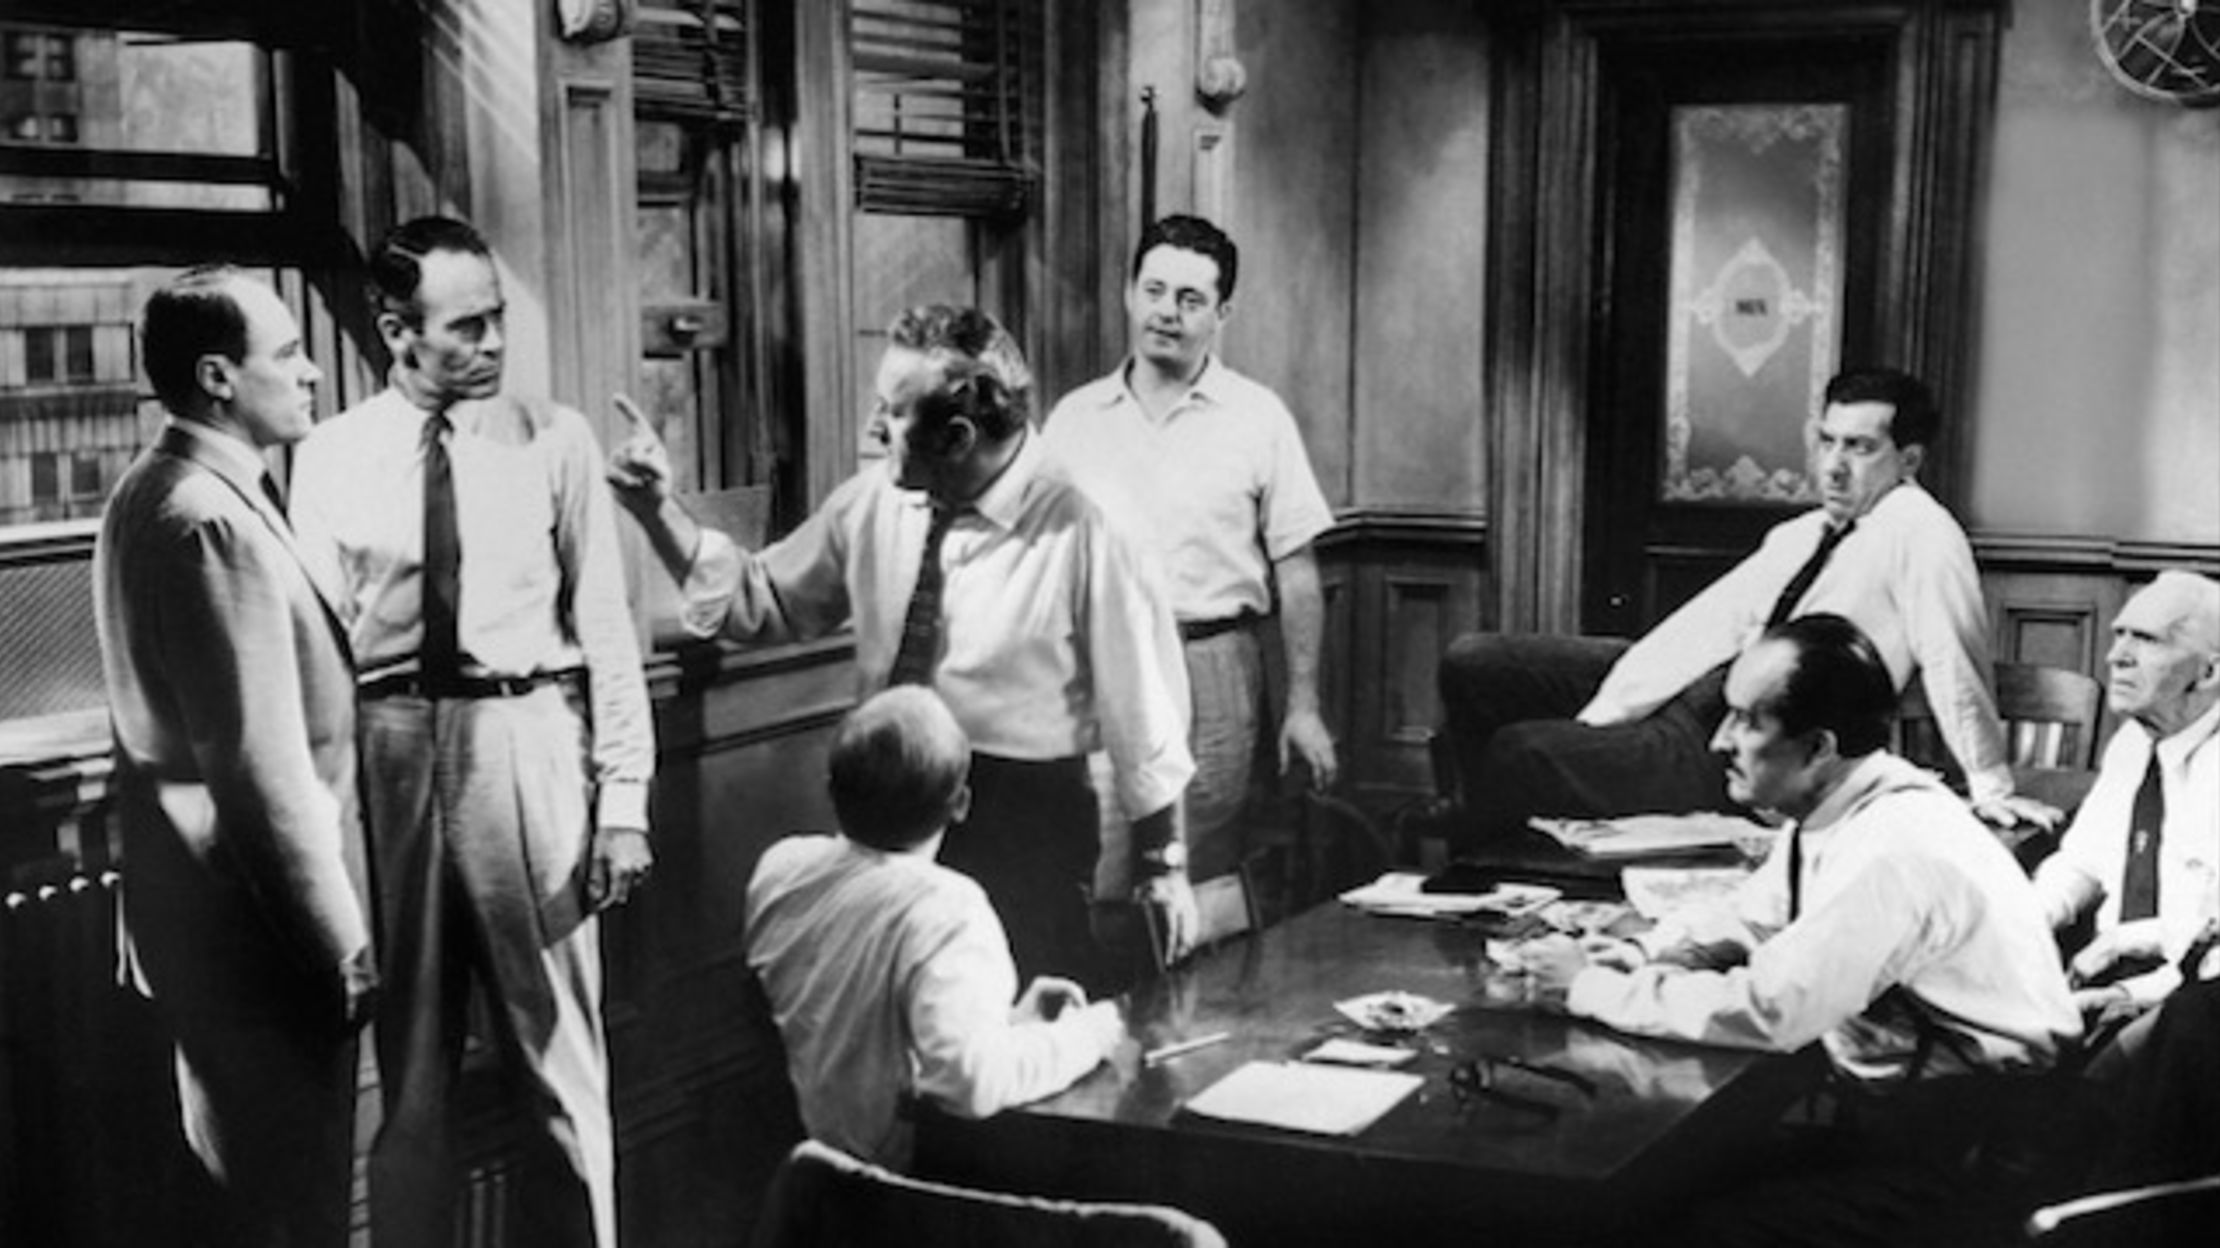 10 Deliberate Facts About '12 Angry Men' | Mental Floss